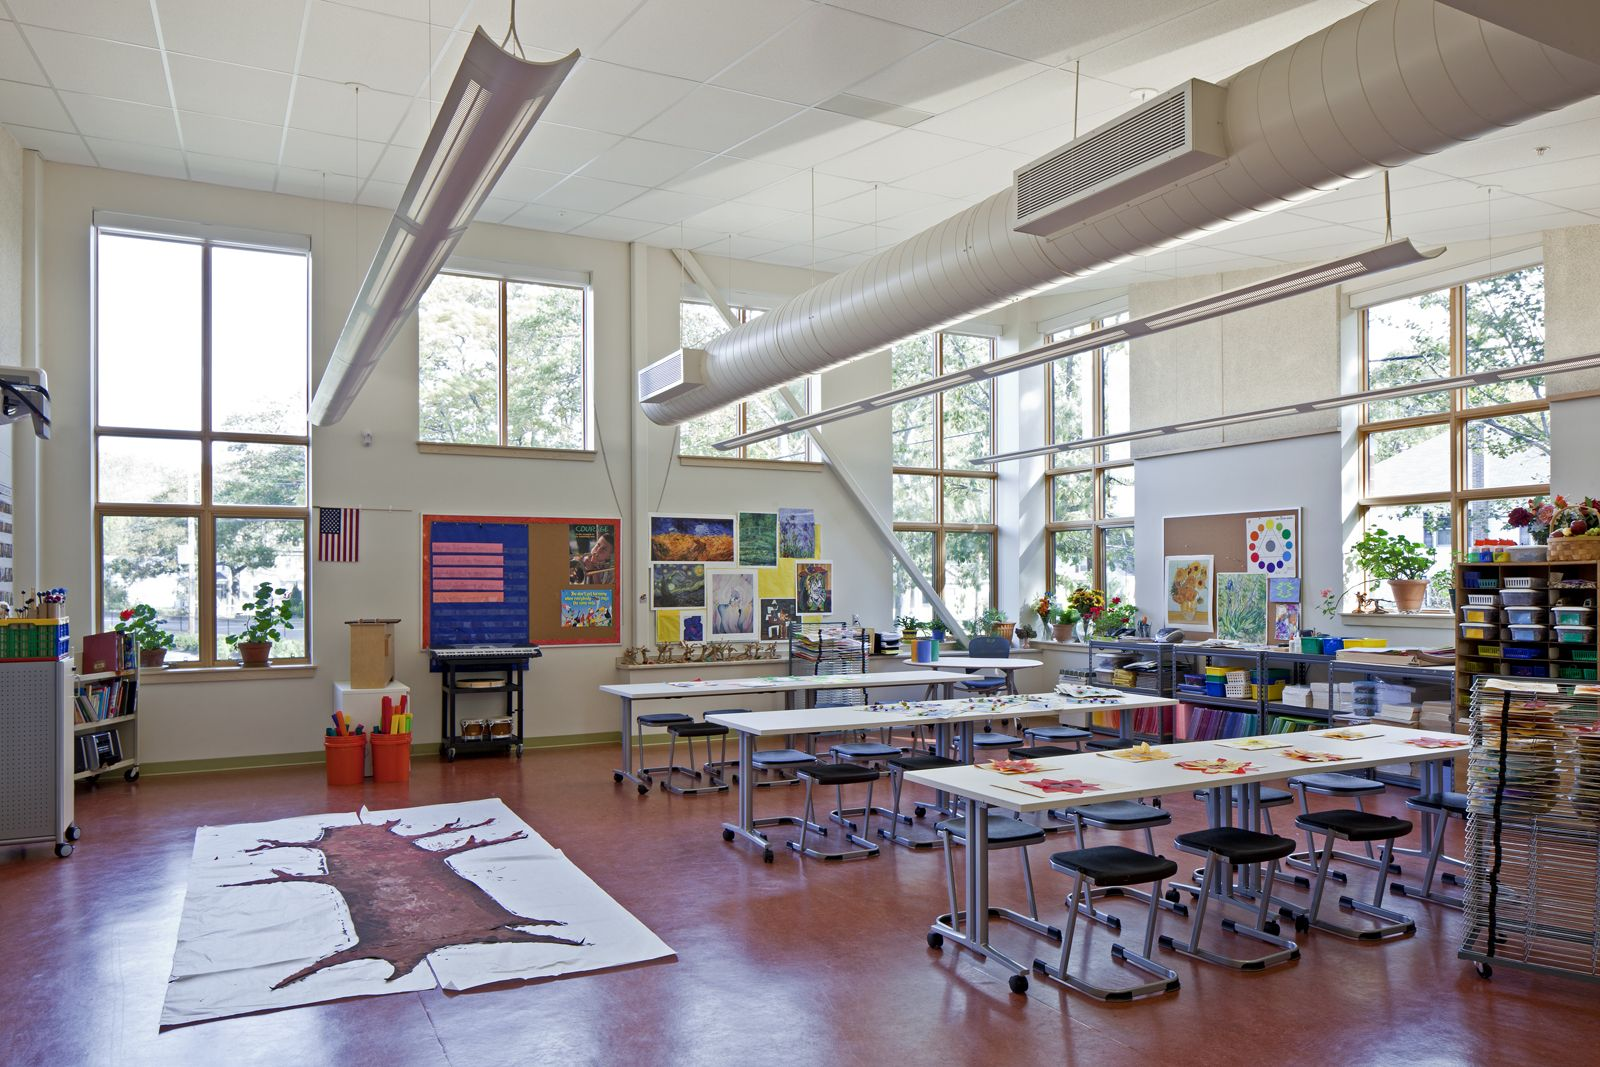 Elementary Classroom Ideas ~ Art room design harriet beecher stowe elementary school